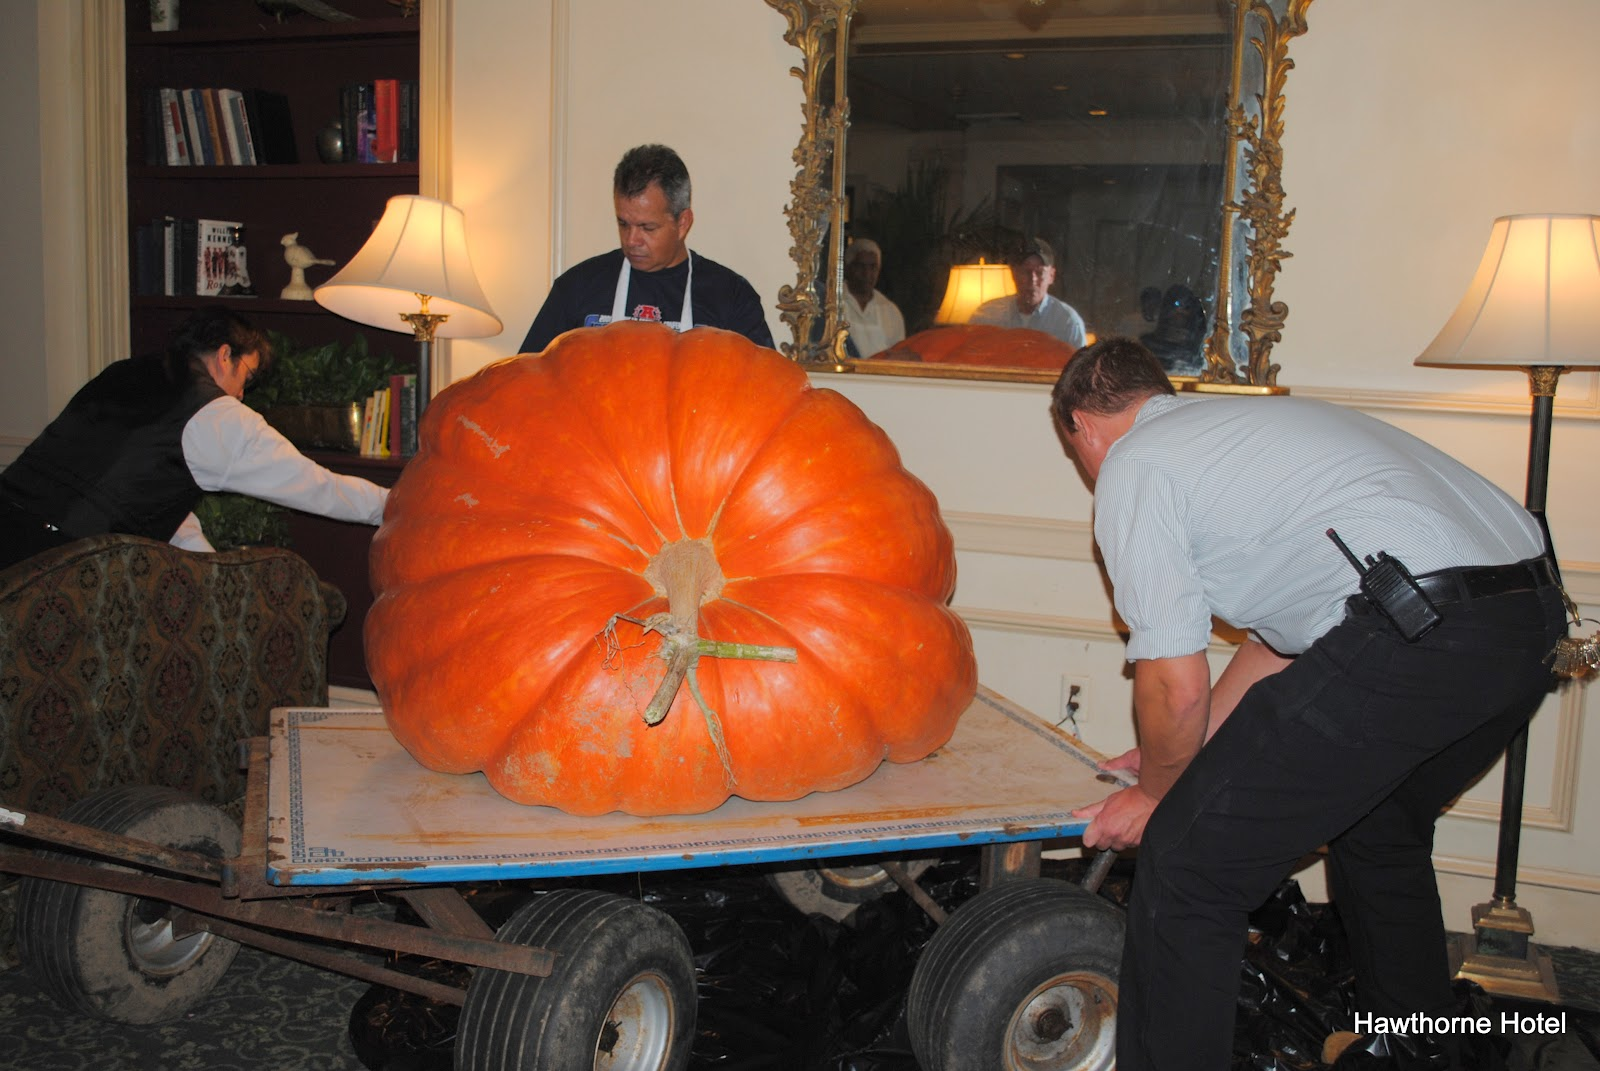 Hawthorne Hotel: Giant Pumpkin Arrives at the Hawthorne Hotel